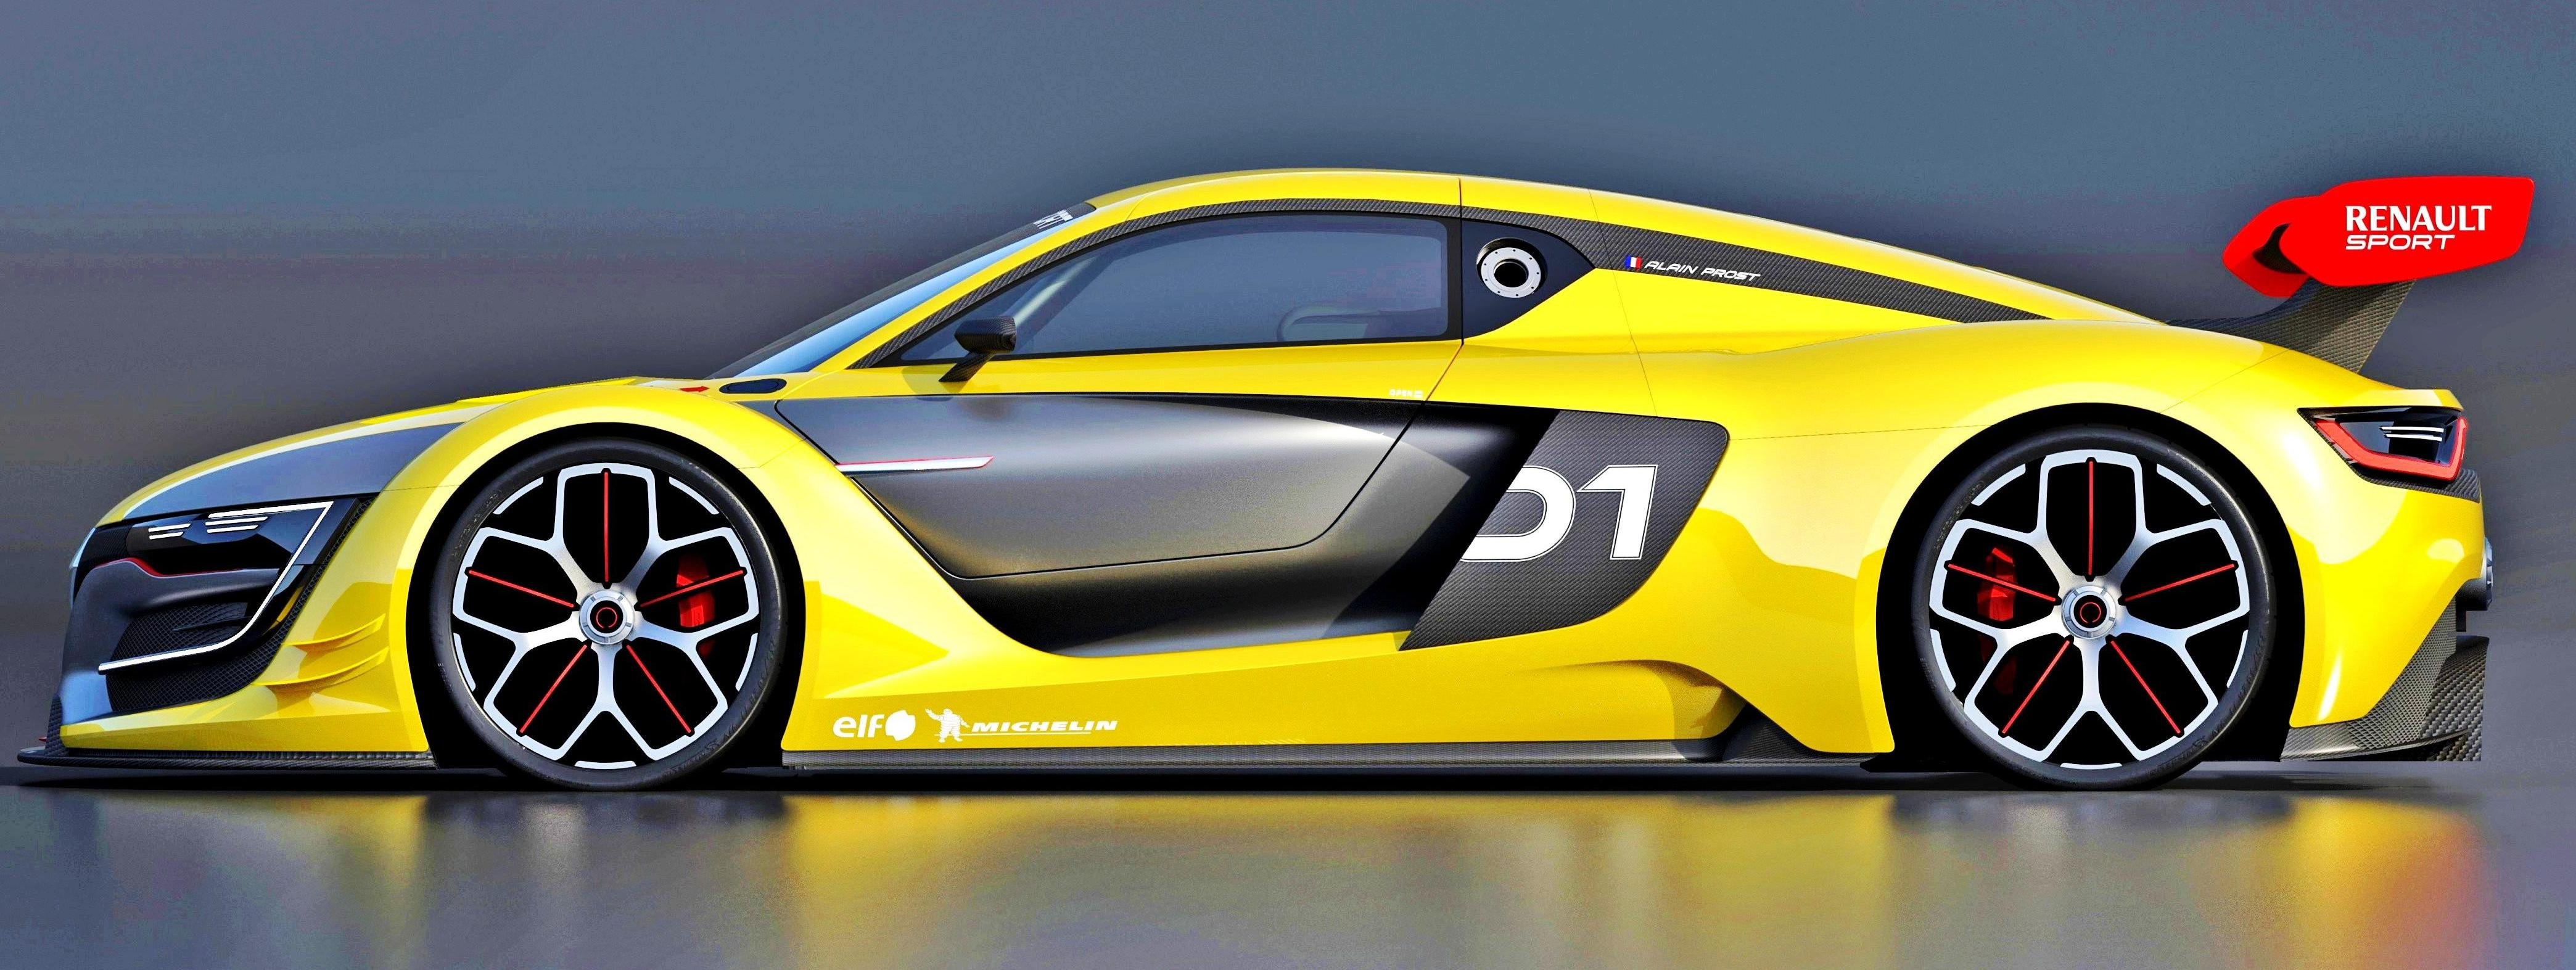 Anyone Remembering The Renault Rs 01 Race Car Project